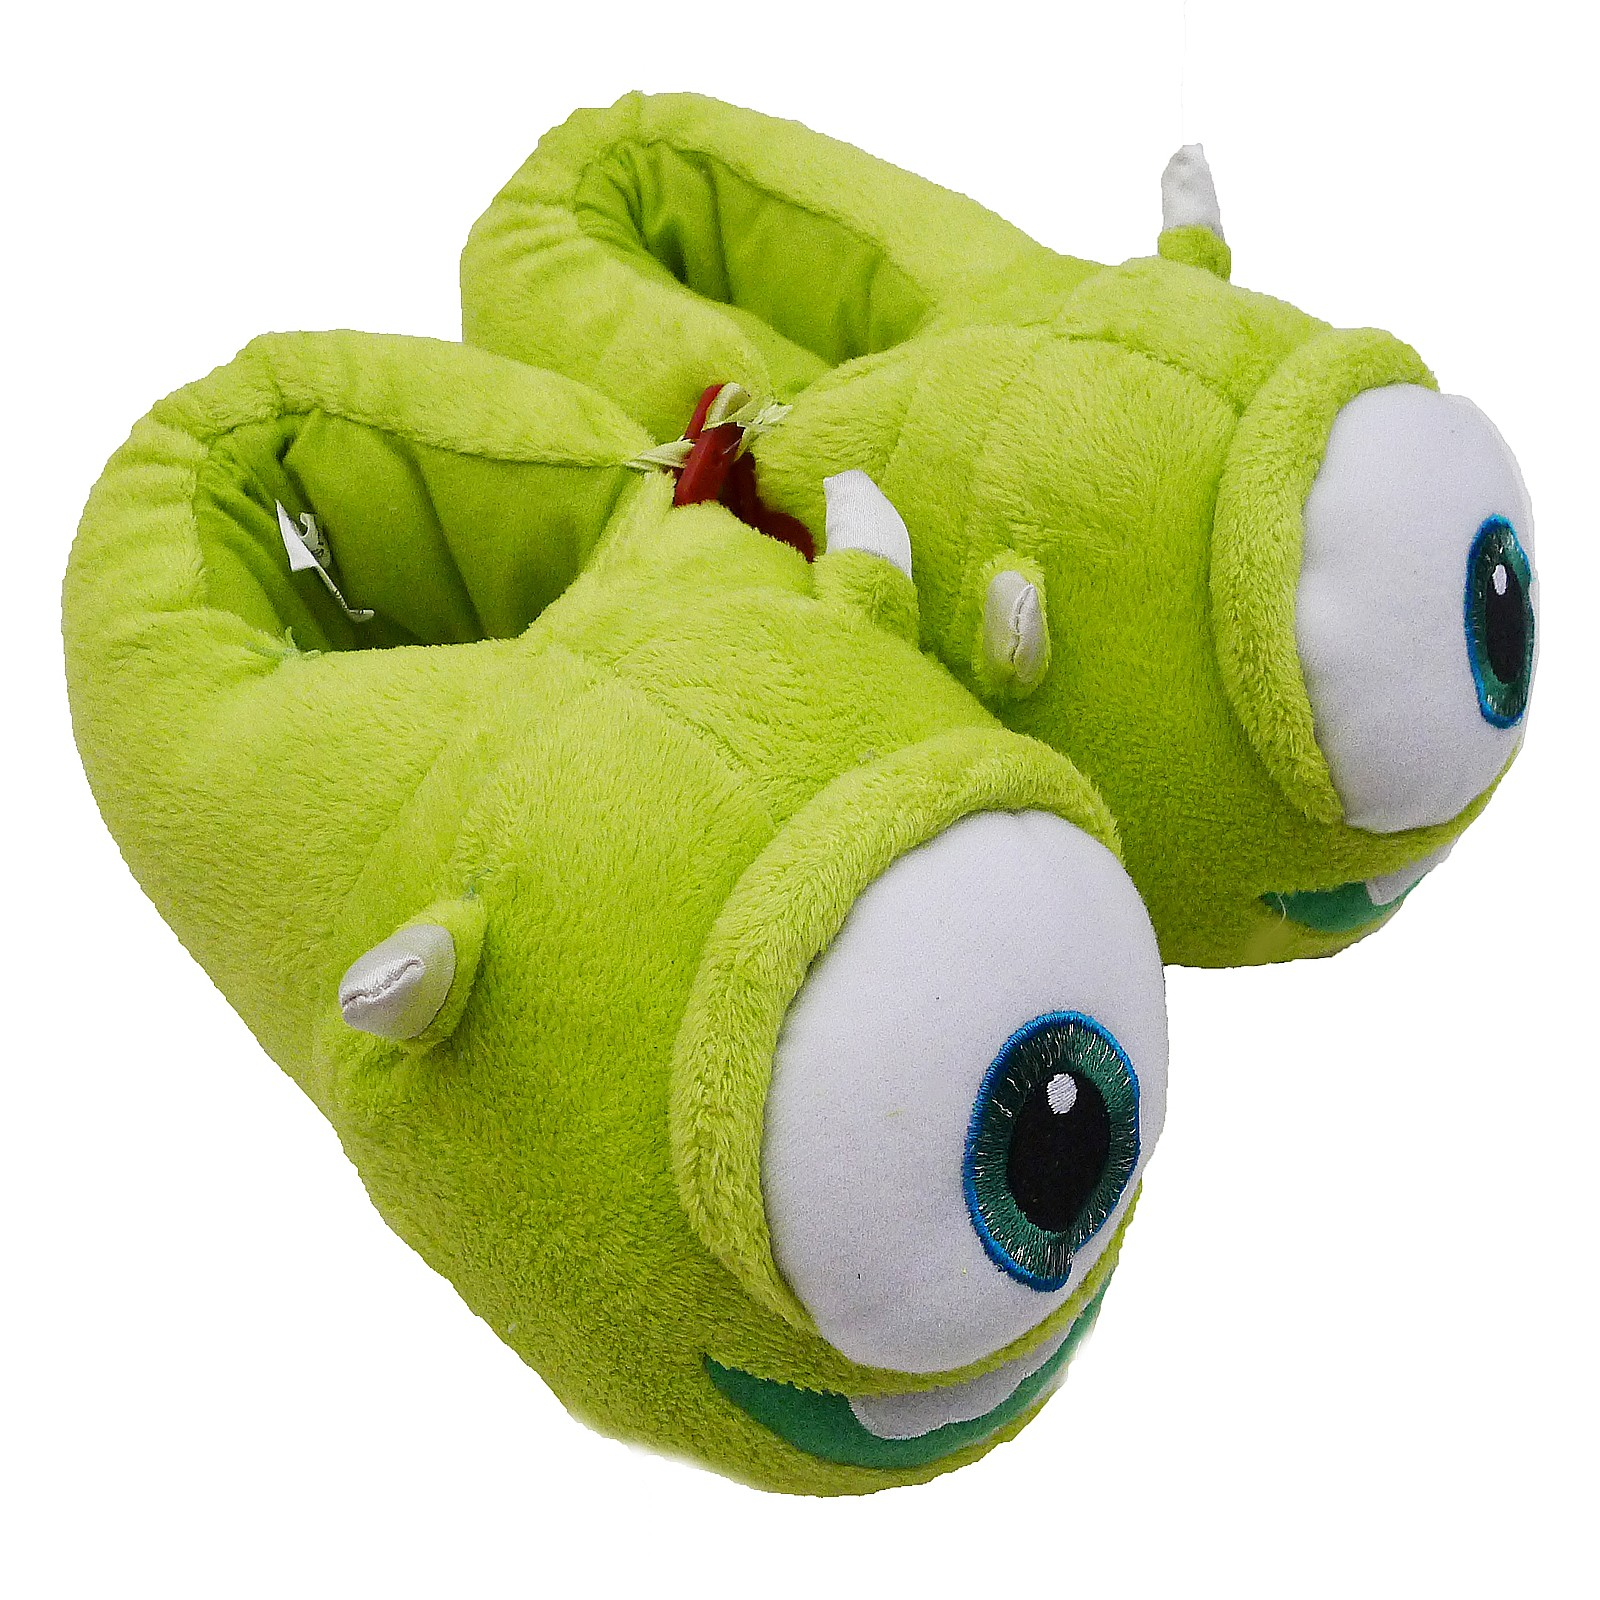 aef70a4c7f7 Sale Item Was £25 00 Disney Monsters University Mike Sully Kids ...